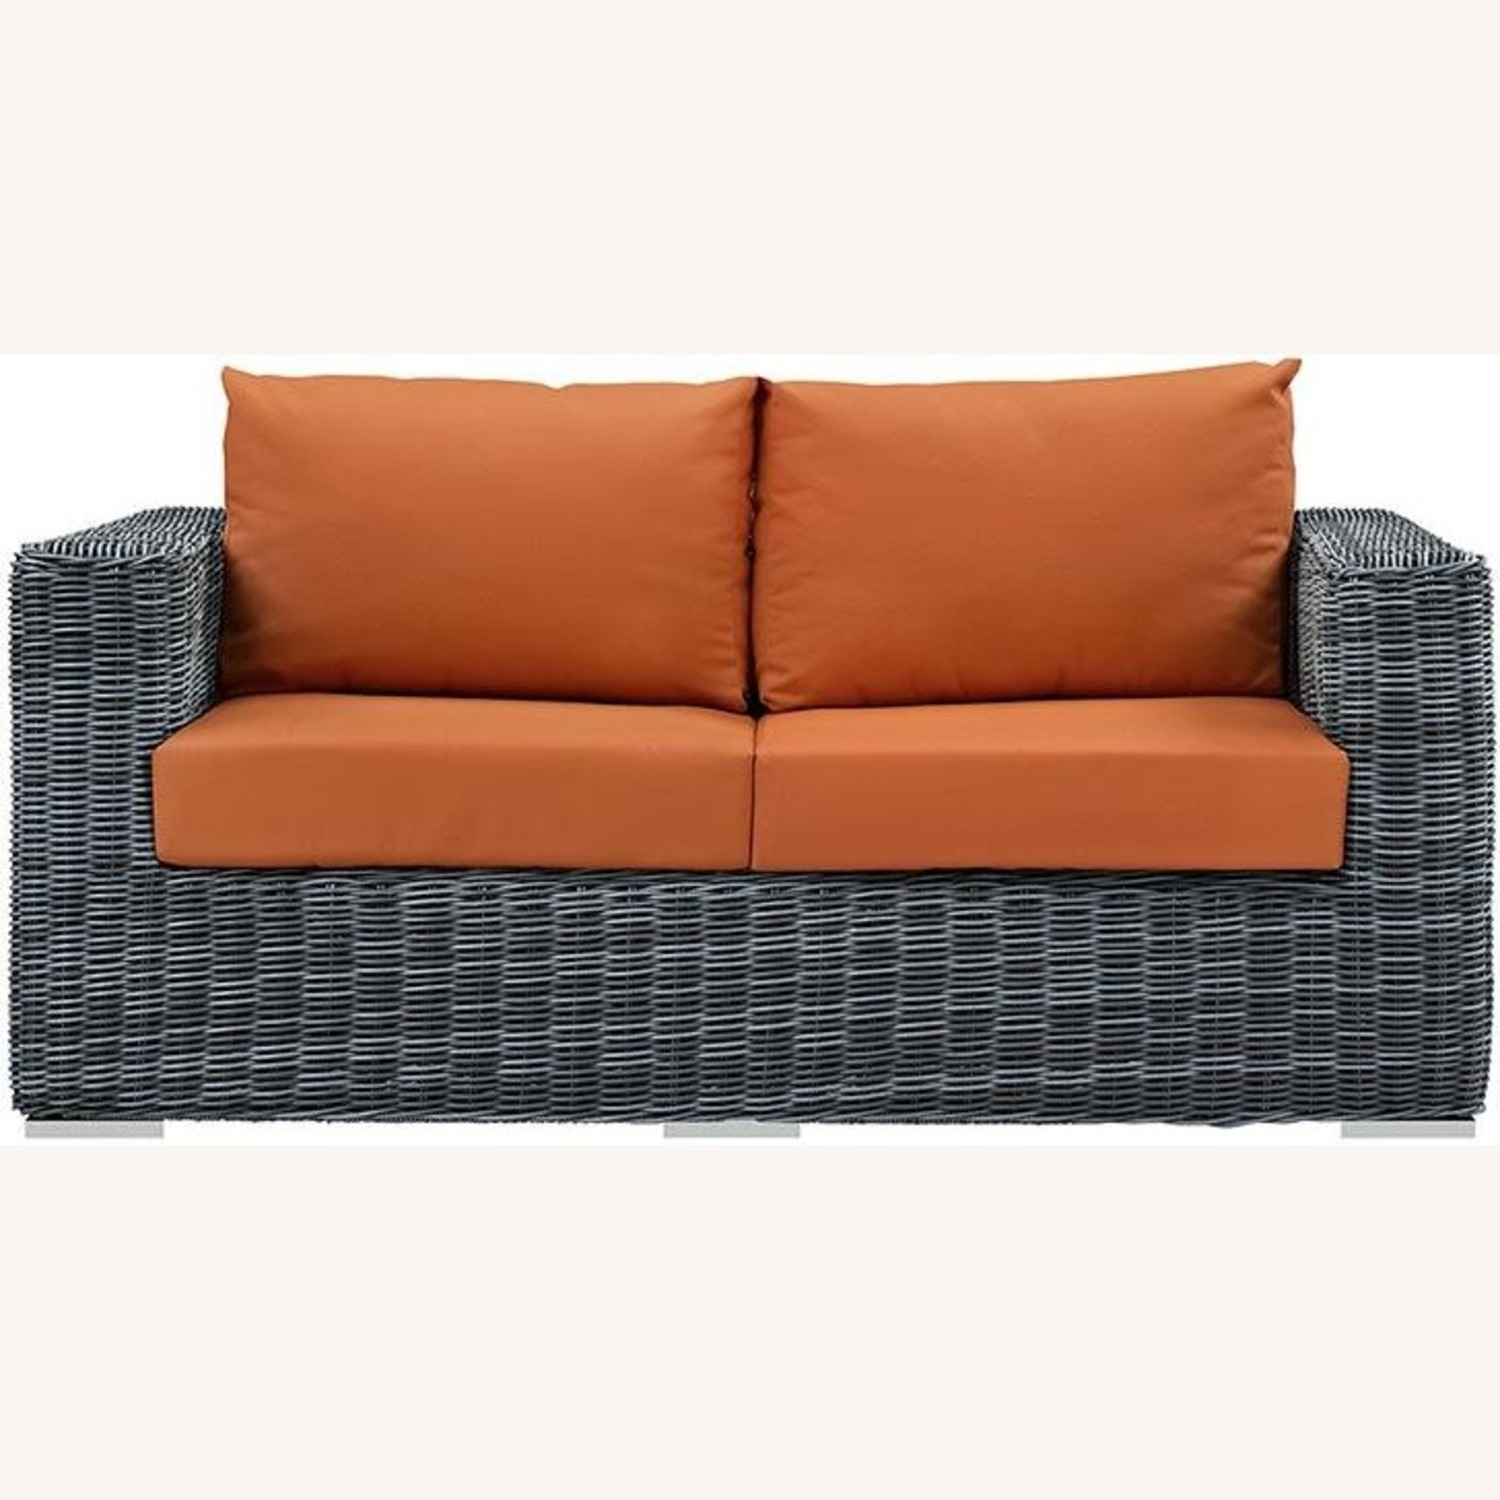 Outdoor Loveseat W/ Tuscan Cushion Fabric - image-0